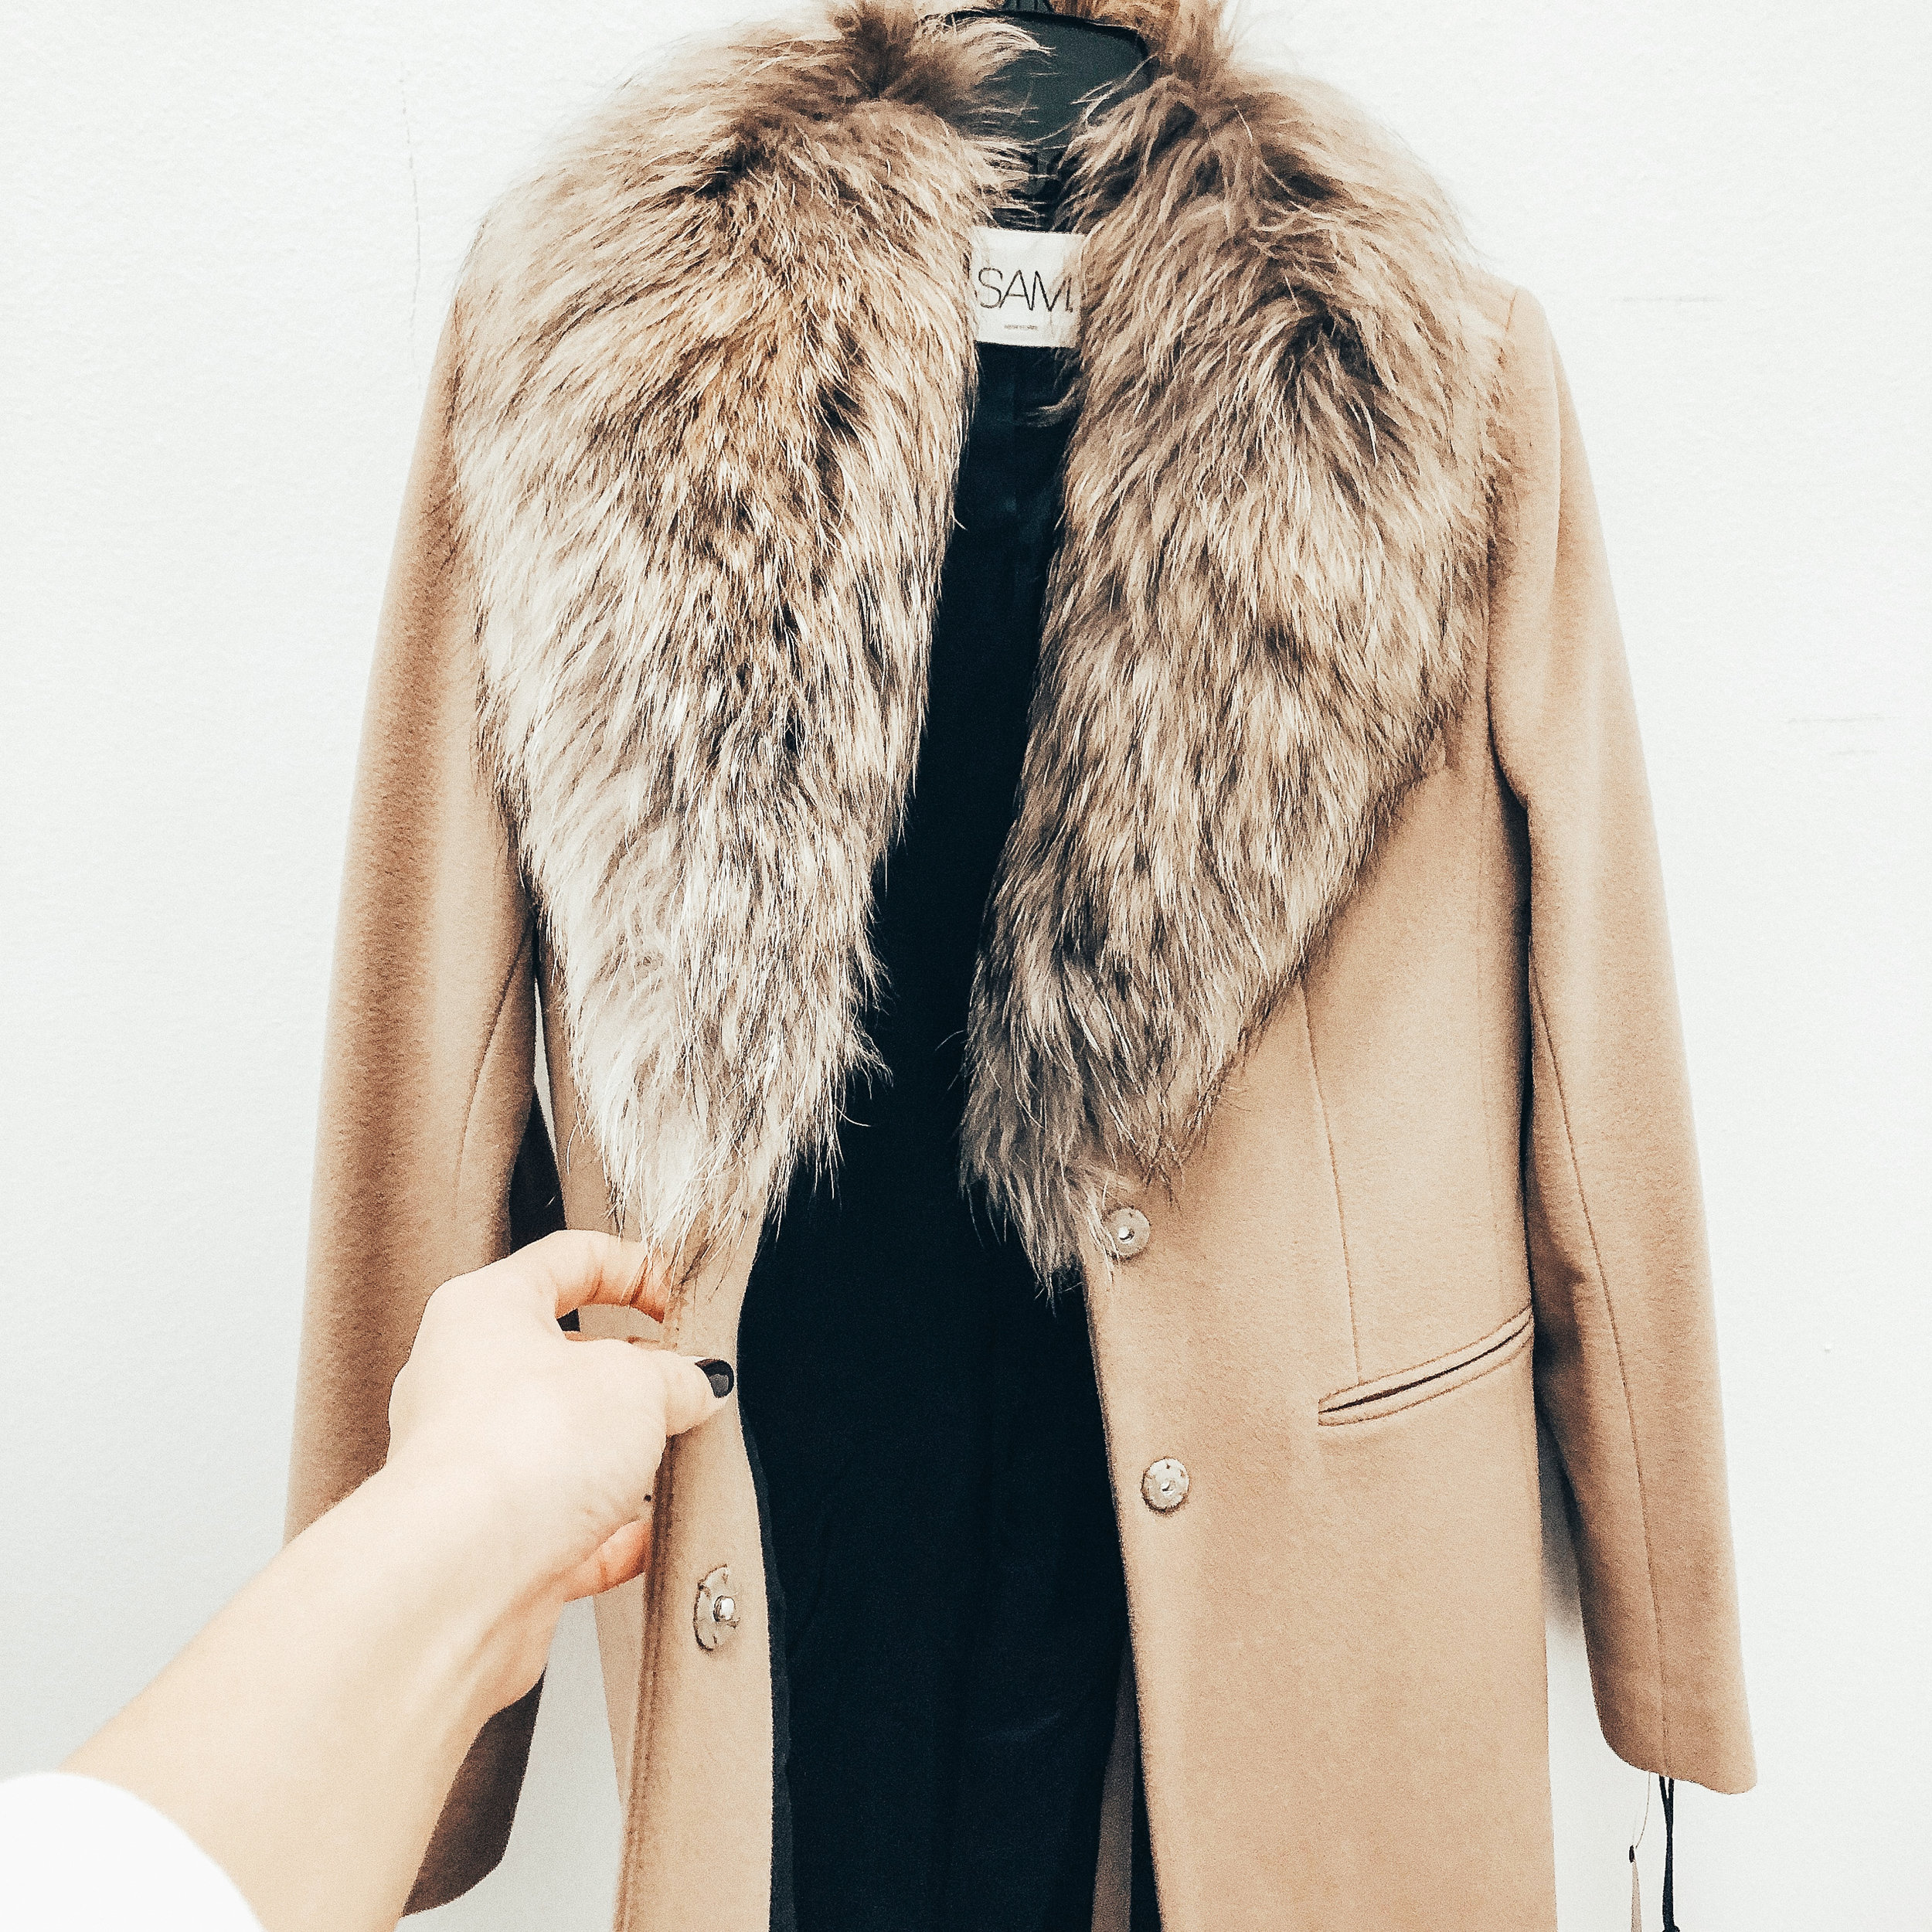 SAM Crosby Coat - $995